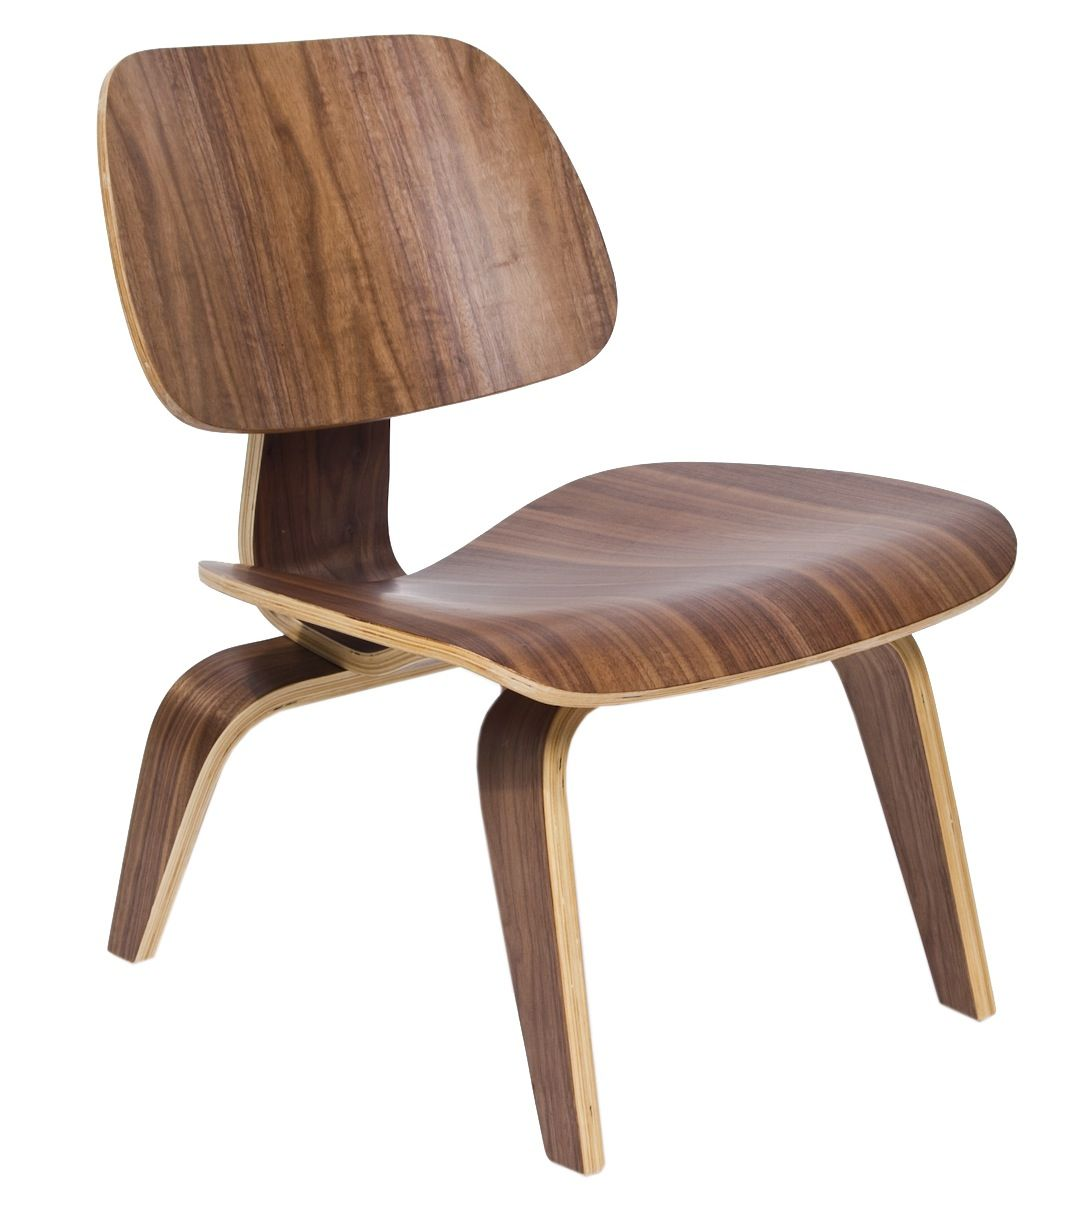 molded plywood lounge chair by eames good for your. Black Bedroom Furniture Sets. Home Design Ideas